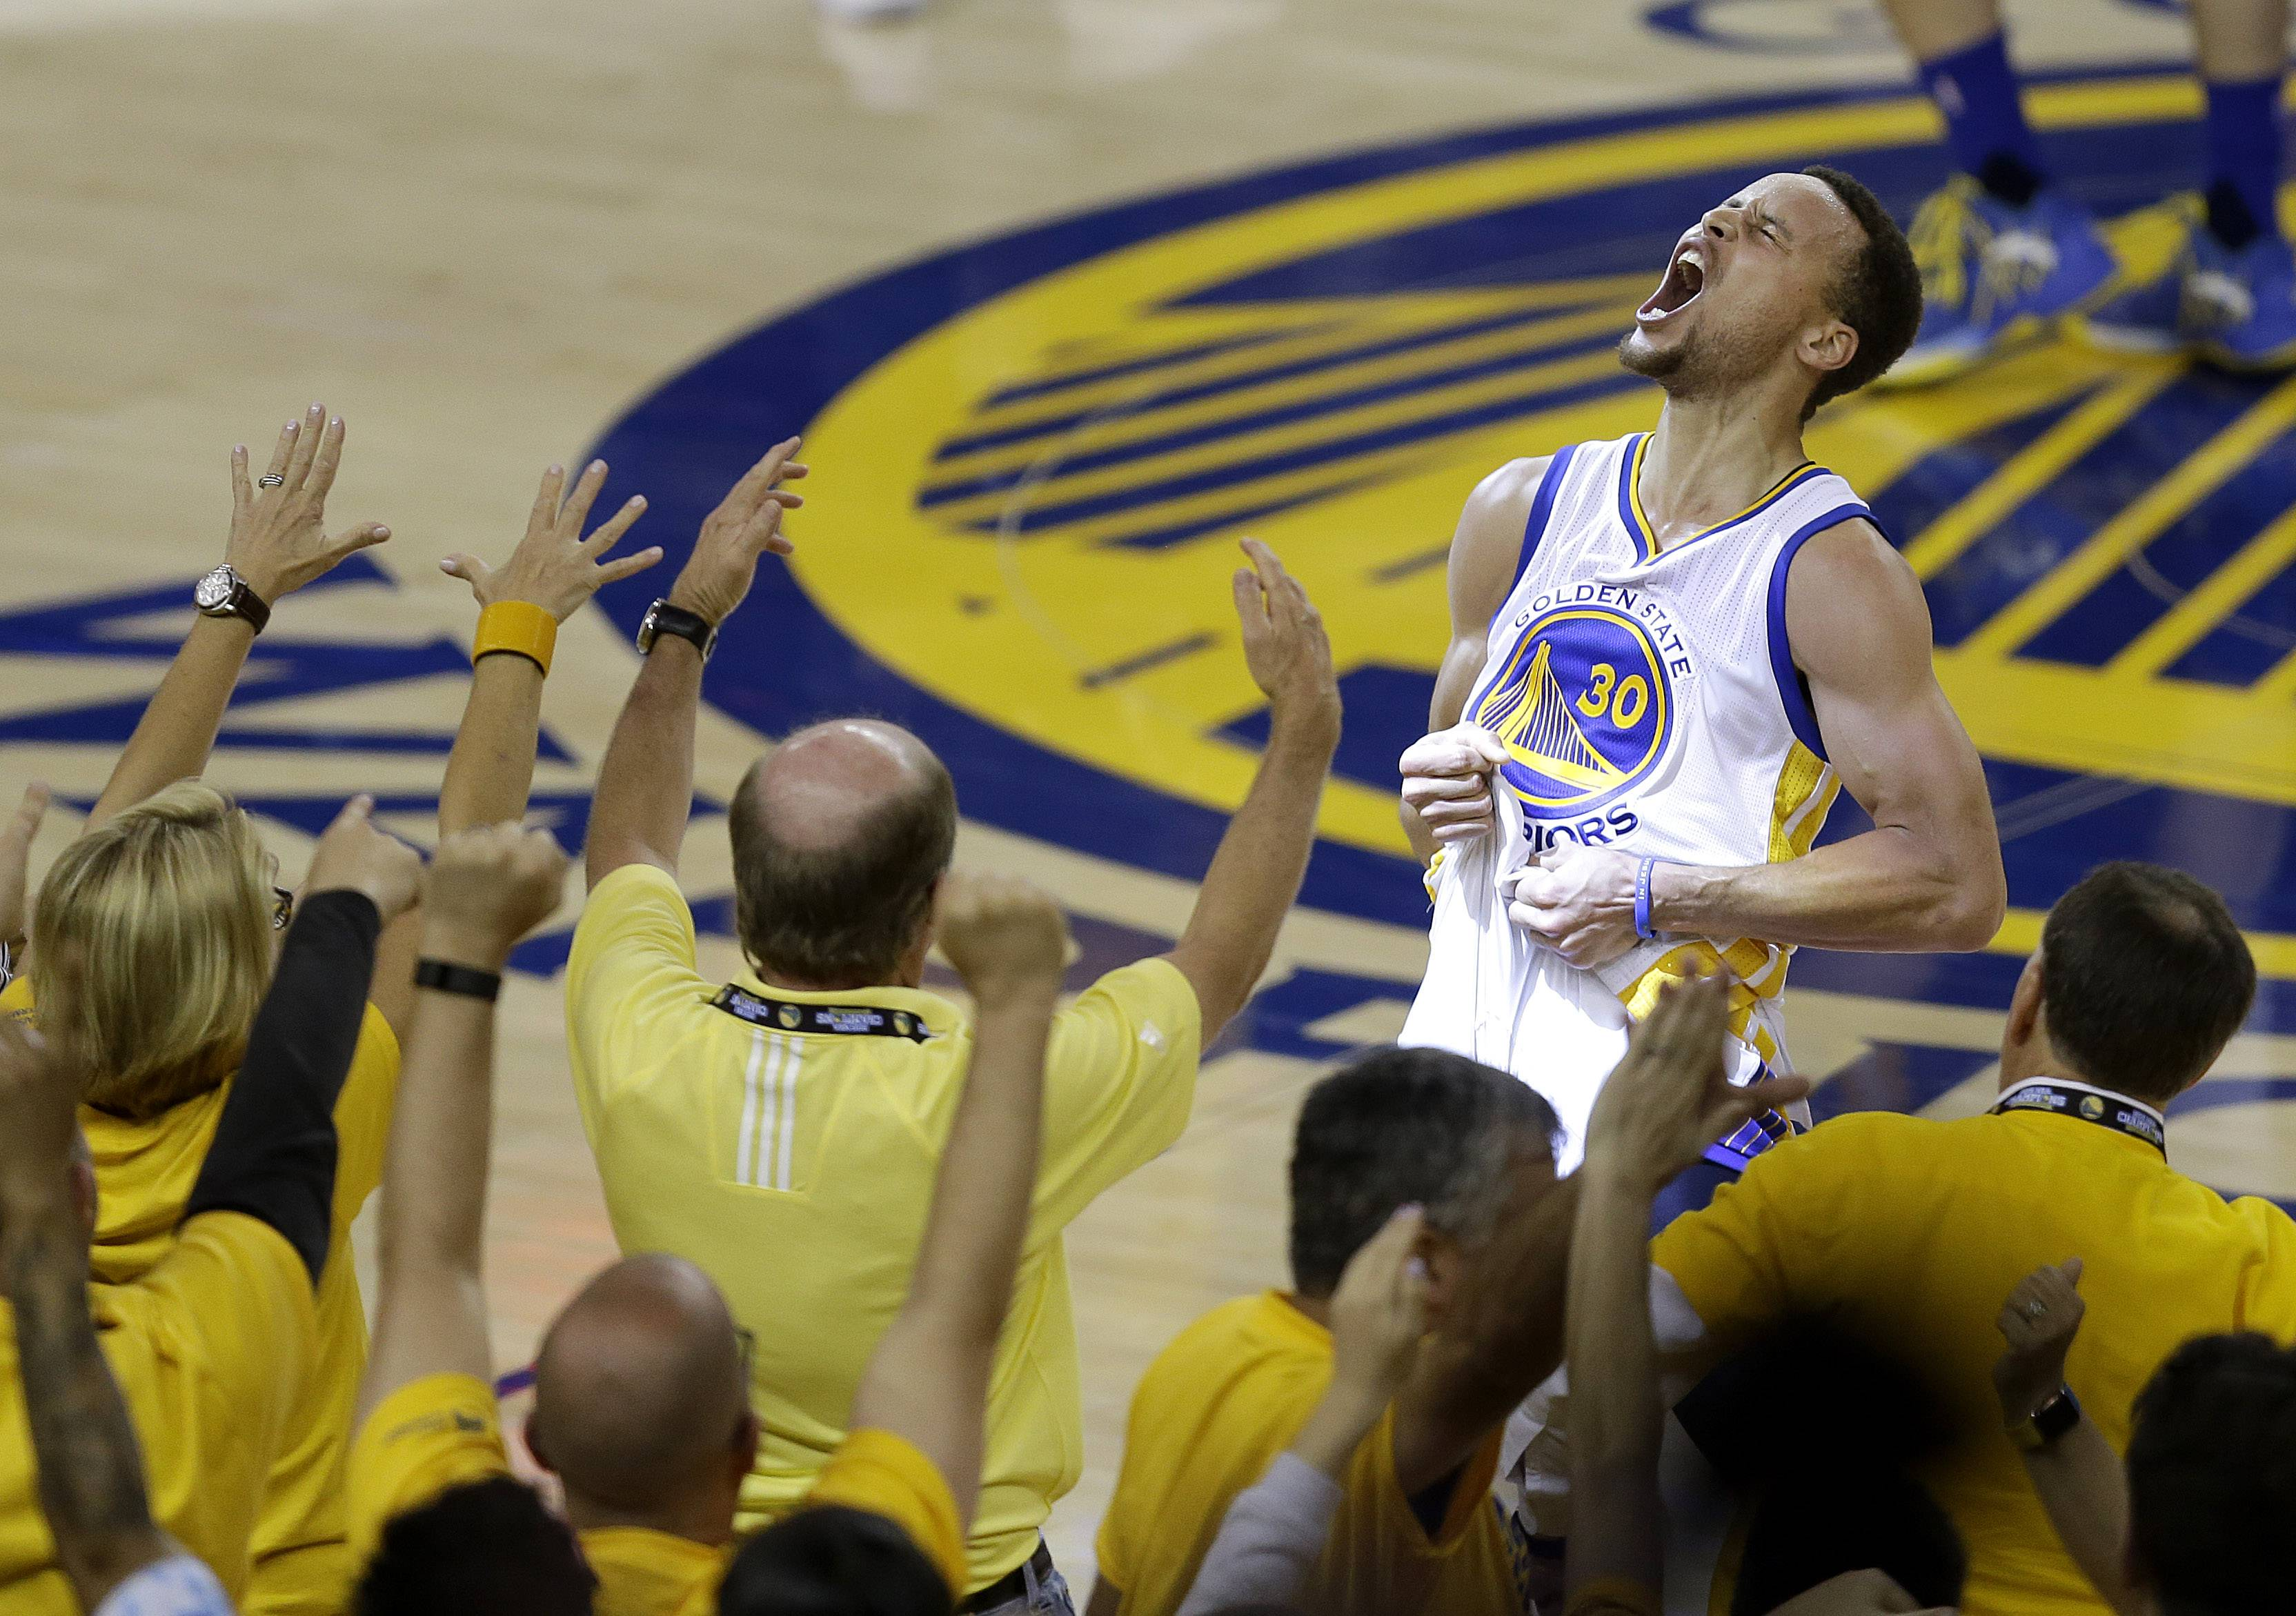 Fans cheer as Golden State Warriors guard Stephen Curry yells after the Warriors beat the Oklahoma City Thunder in Game 7 of the NBA basketball Western Conference finals in Oakland, Calif., Monday, May 30, 2016. The Warriors won 96-88. (AP Photo/Ben Margot)